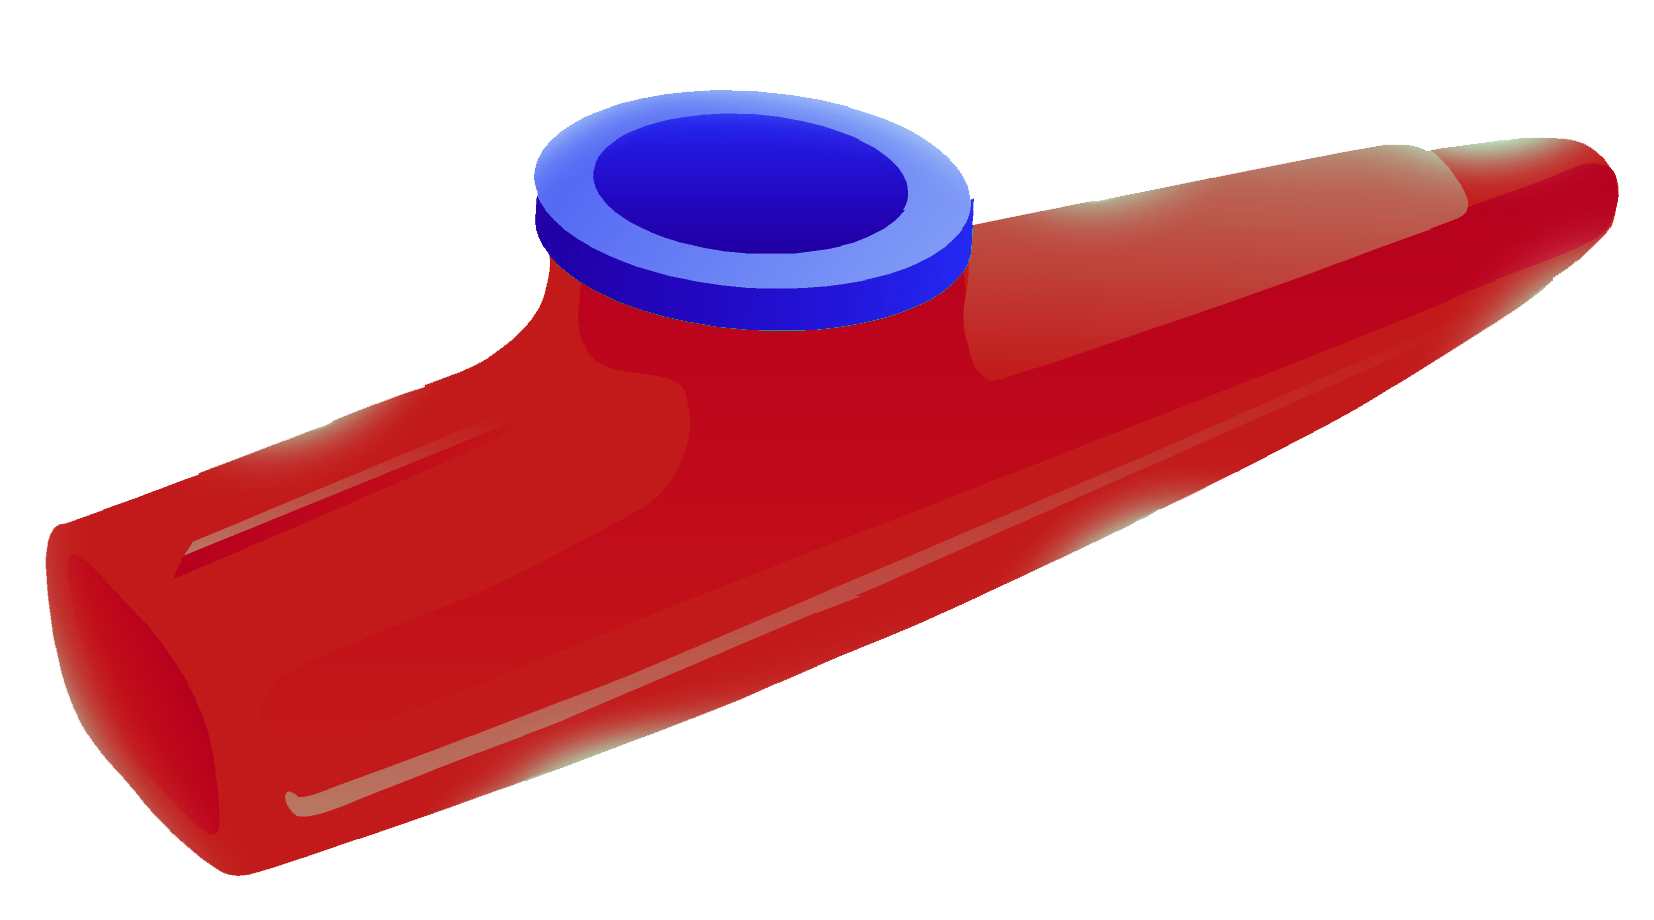 kazoo transparent